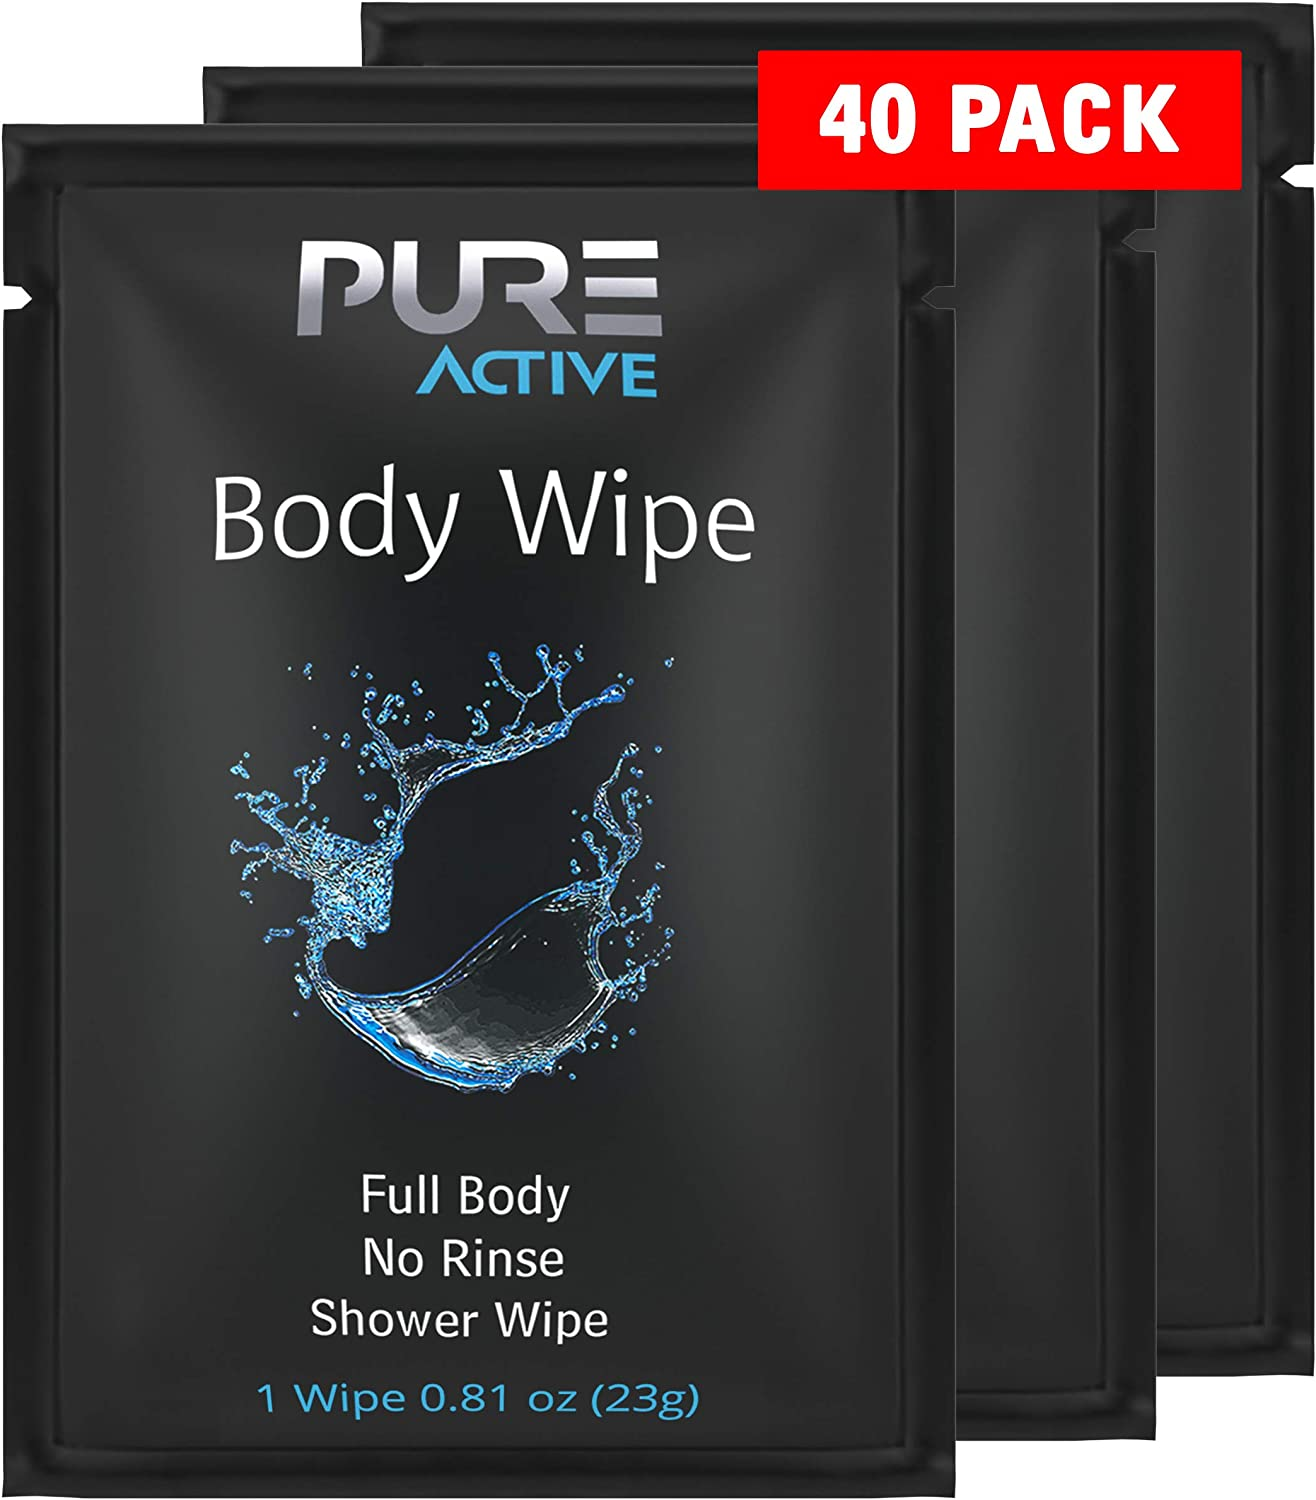 Shower Body Wipes, 40 Individually Wrapped Personal Hygiene Body Wipes for Women and Men, Keep Clean After Gym Travel Camping Outdoors Sports (Black, 40 Pack) (Fresh, 40 Pack)